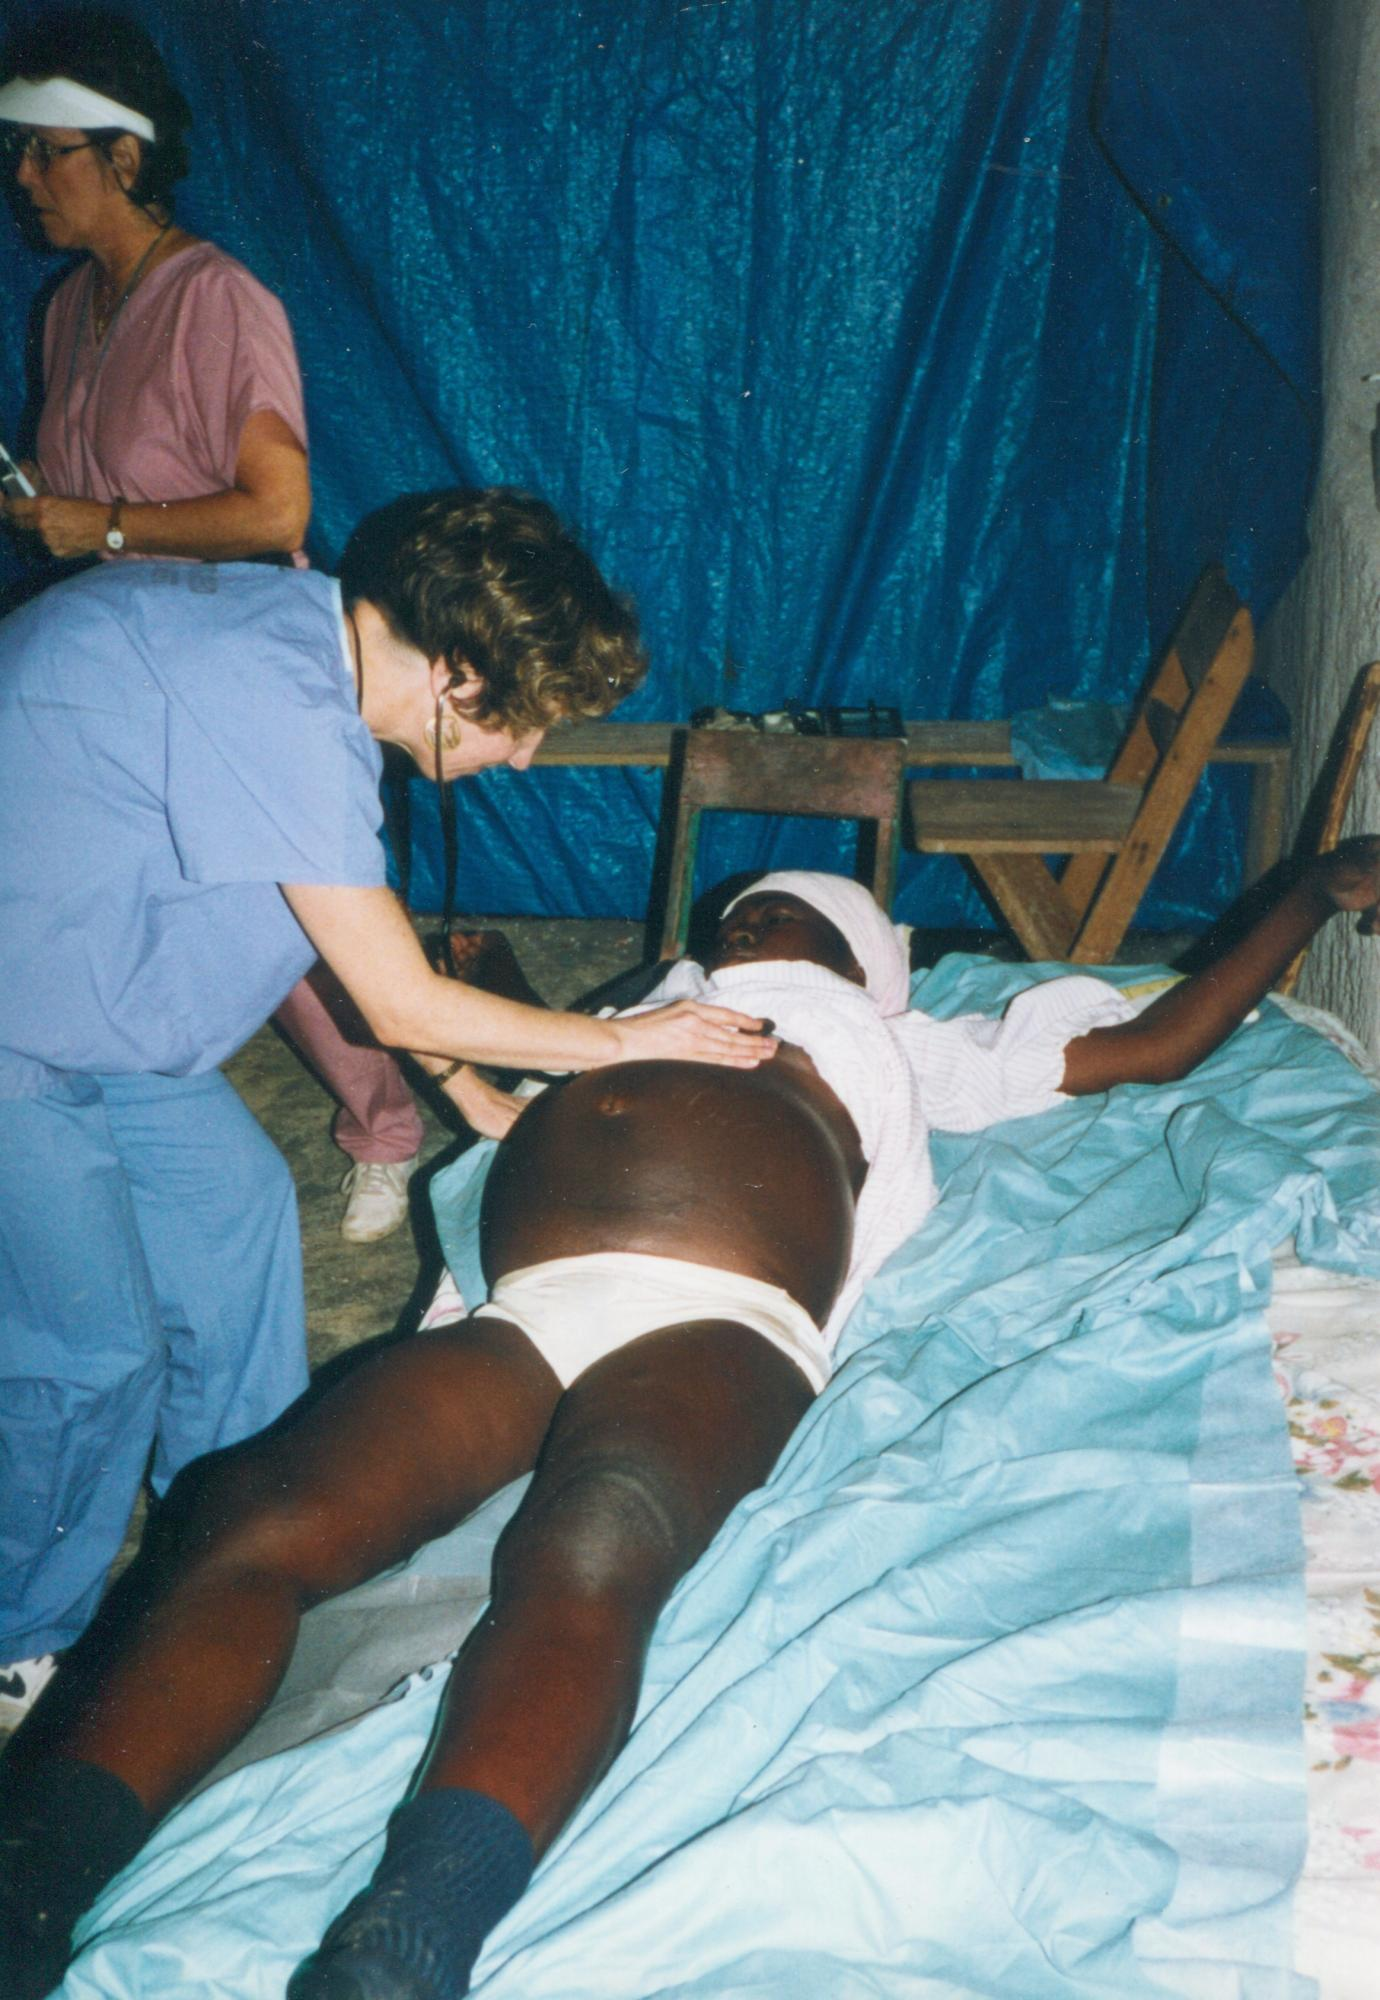 1999_Dr_Murphy_w_Pregnant_woman_on_bed_Vital_checked_Thiotte_p_DrMM_image31.jpg